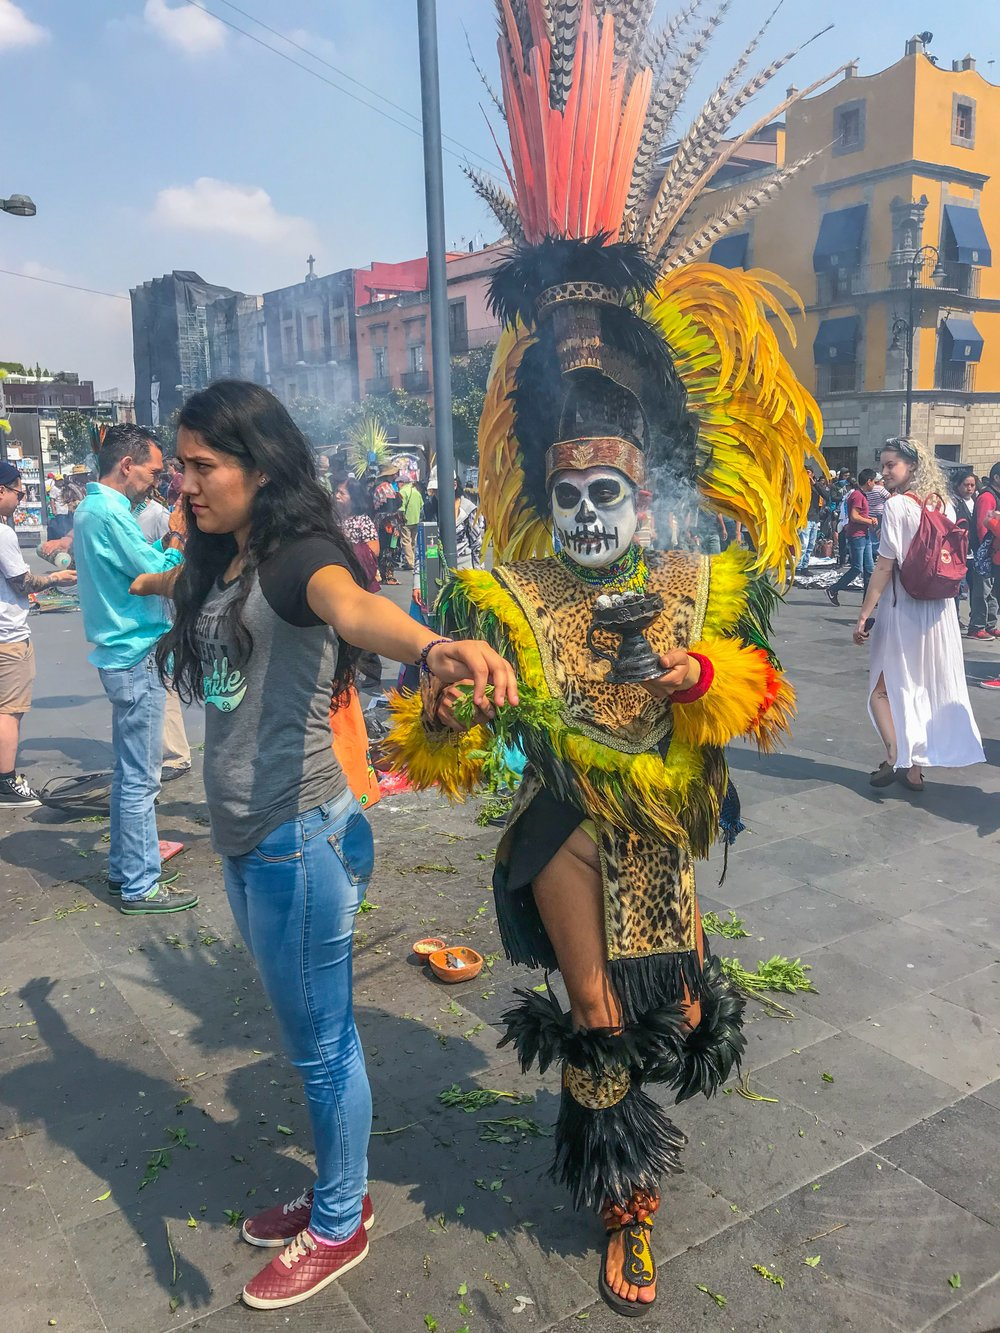 Cleansing ceremony in Mexico City